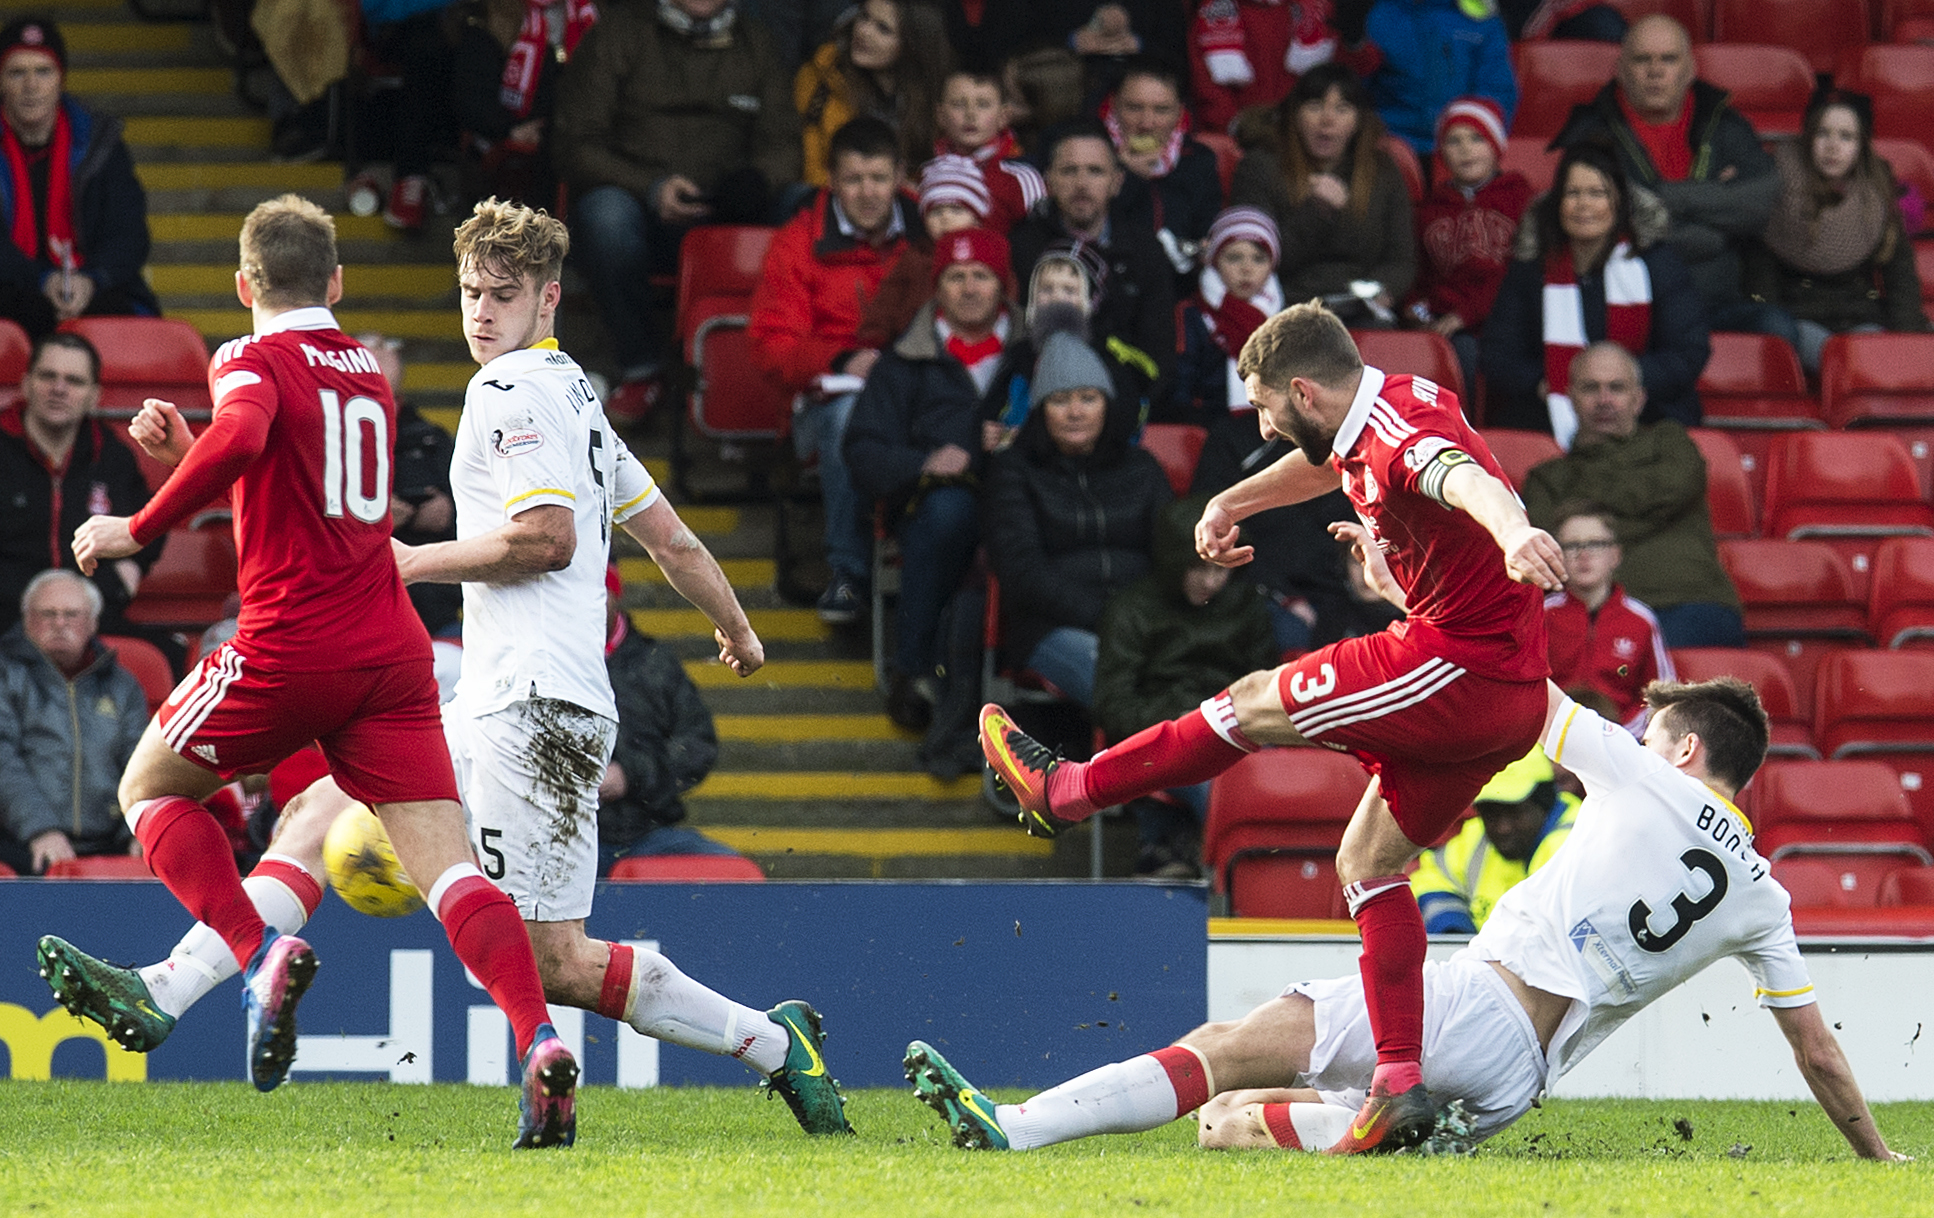 Graeme Shinnie scored against Partick to get the Dons into the semi.